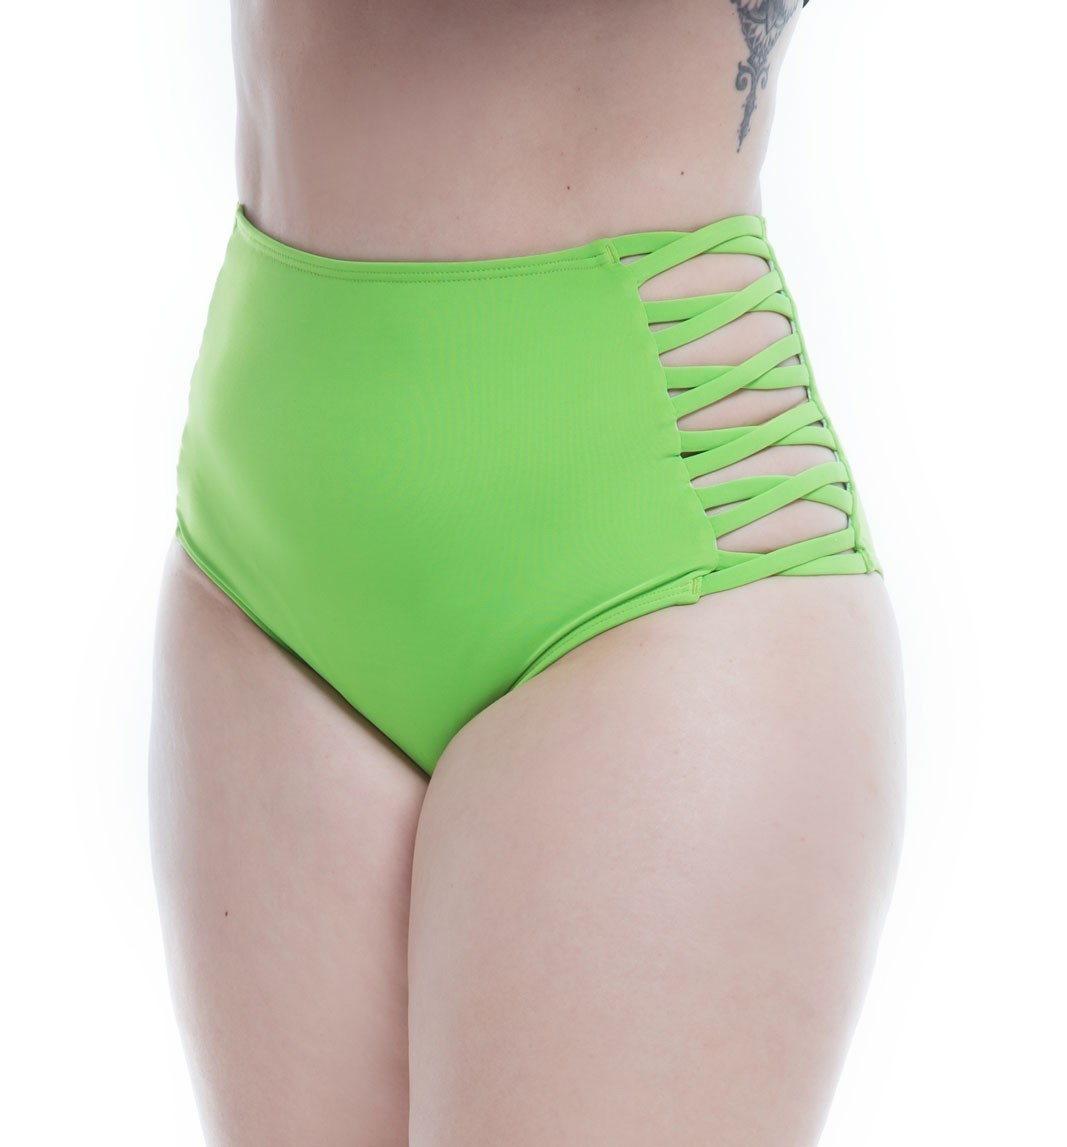 Hot Pants Lateral Cruzada Verde Flúor